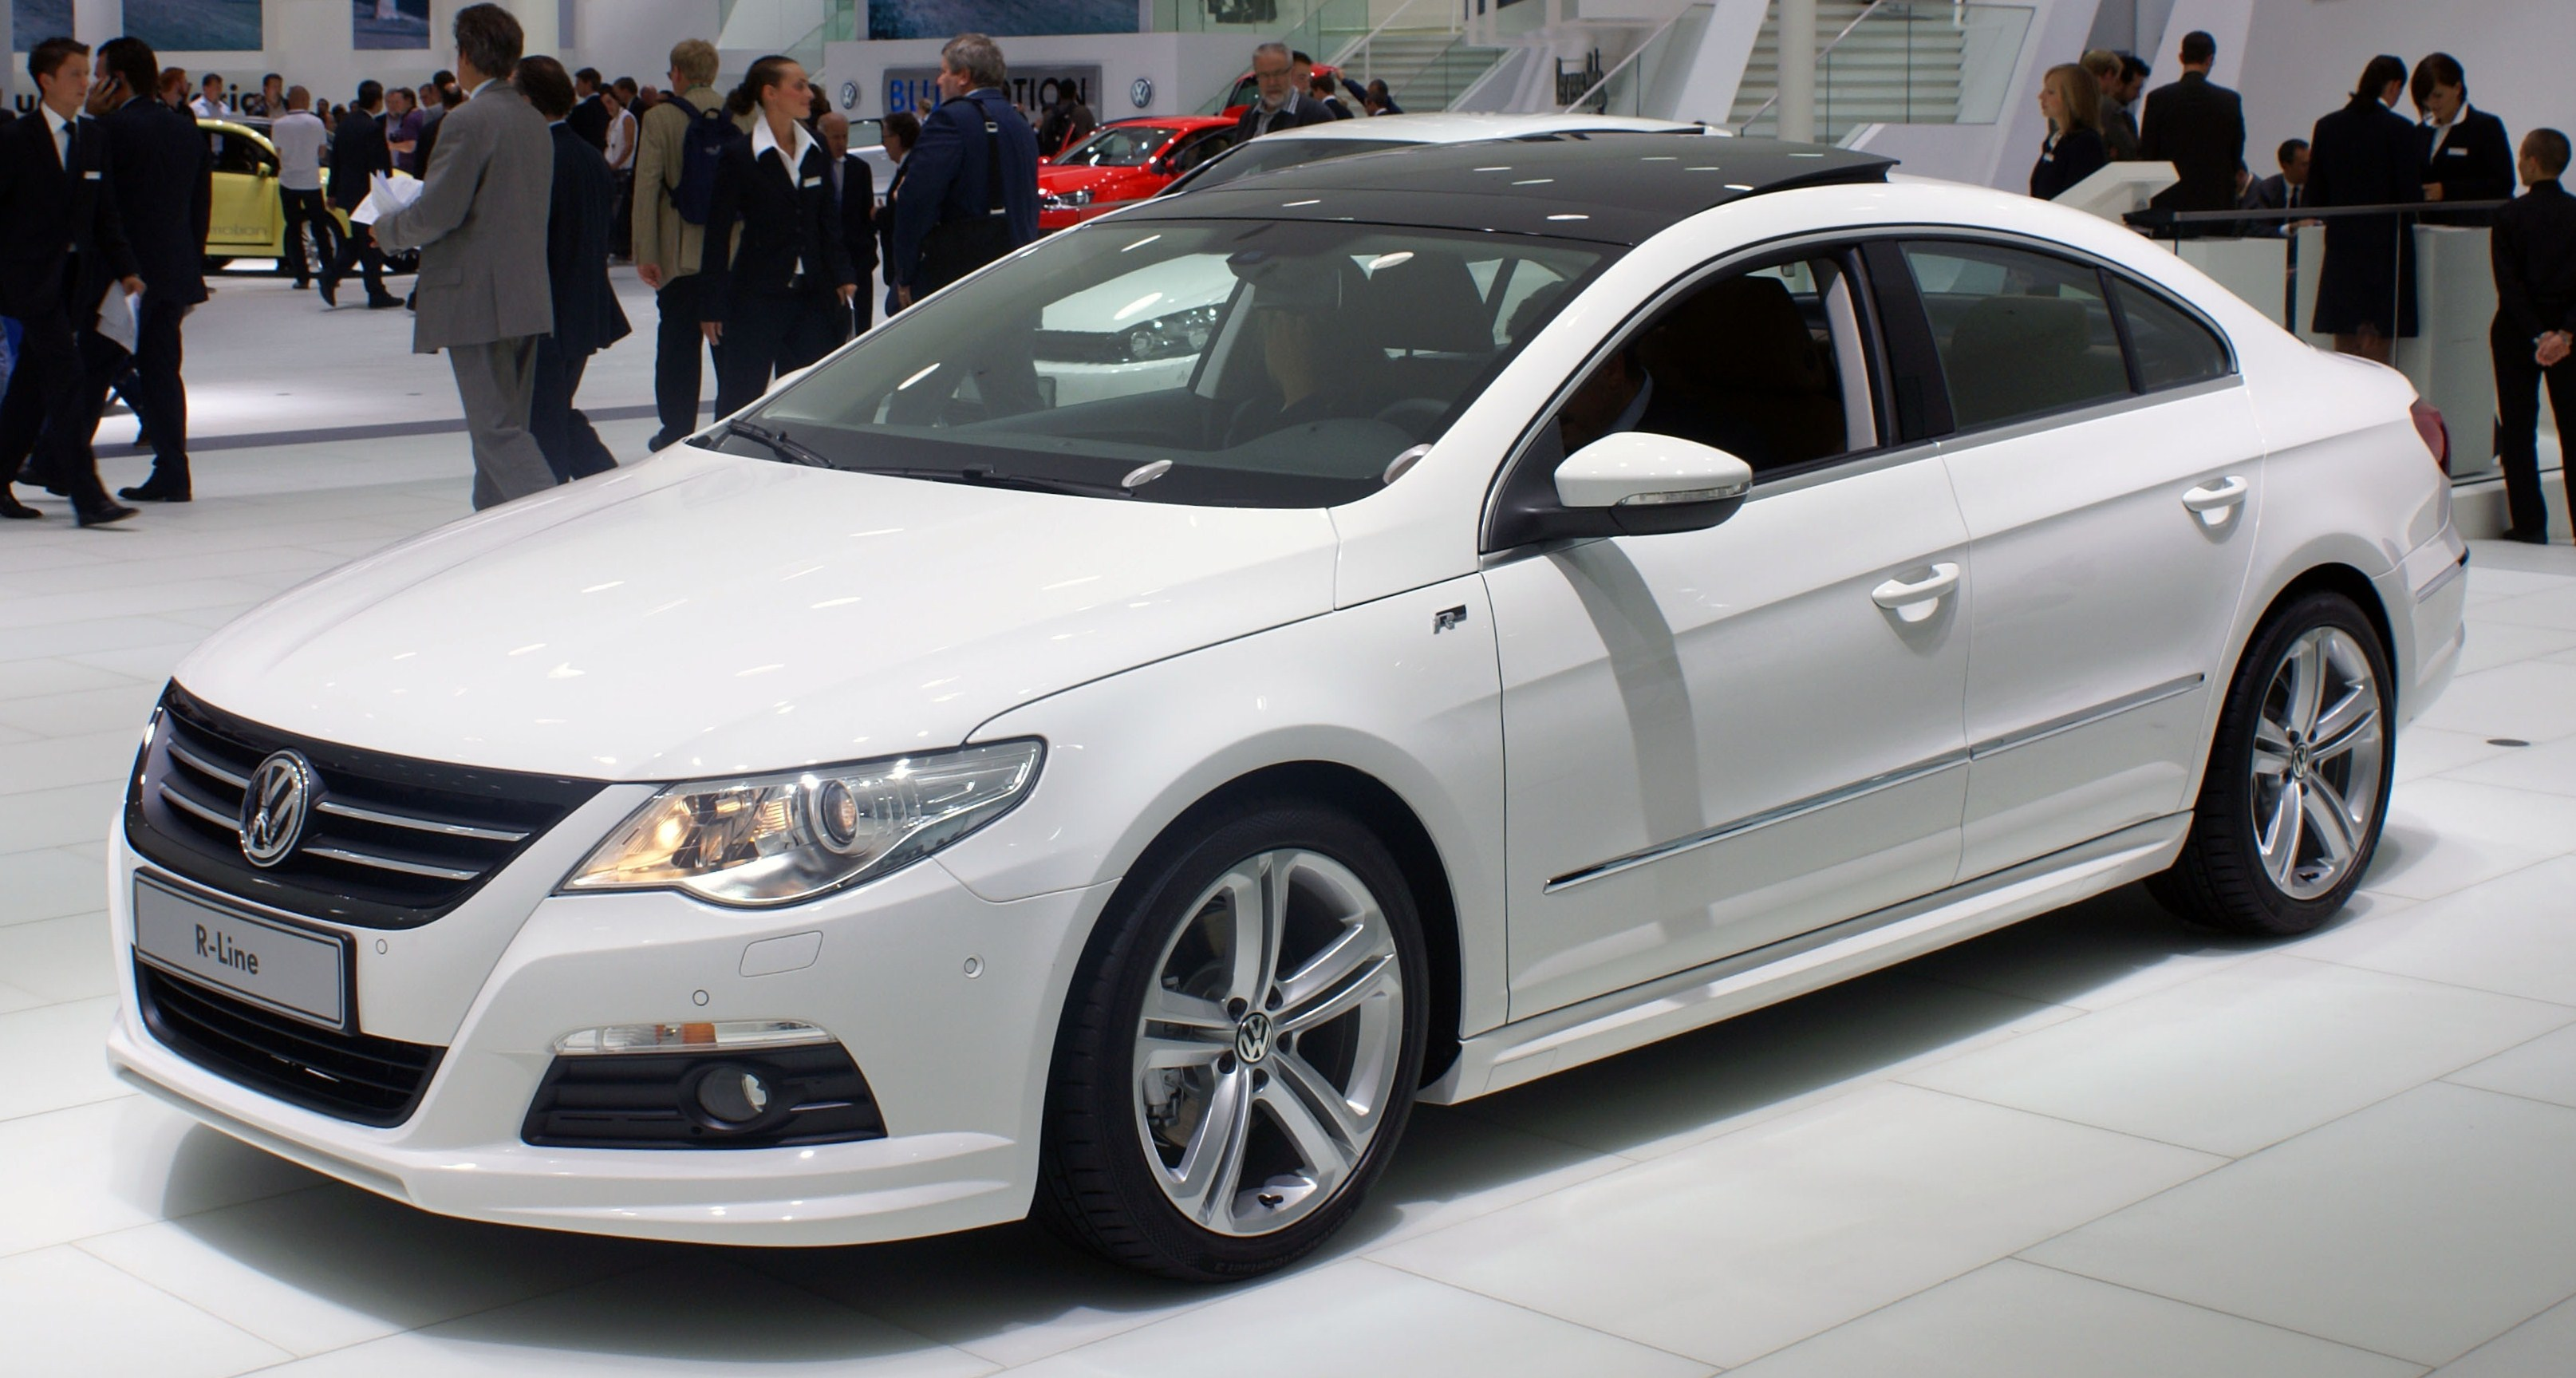 fil white vw passat cc r line fl iaa 2009 jpg wikipedia. Black Bedroom Furniture Sets. Home Design Ideas